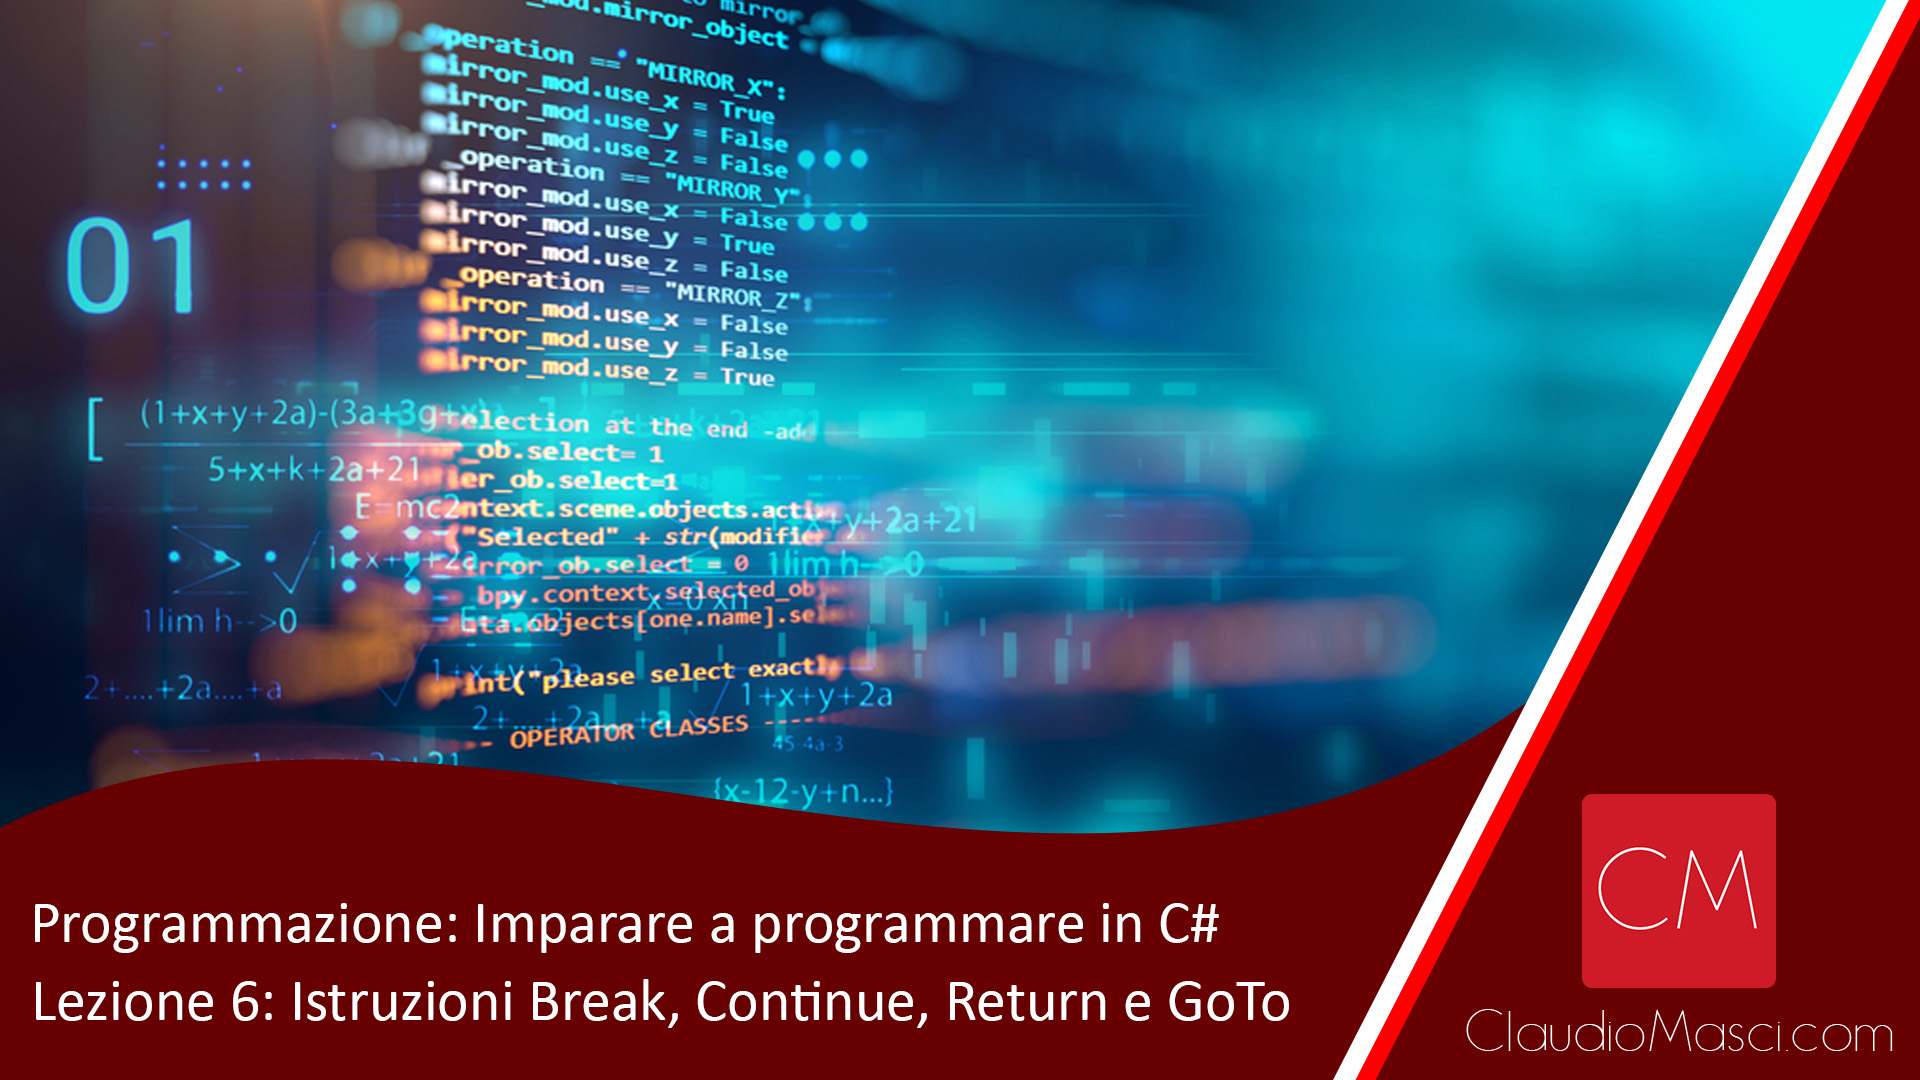 Programmazione – Imparare a programmare in C# – Lezione 6: Break, Continue, Return e GoTo